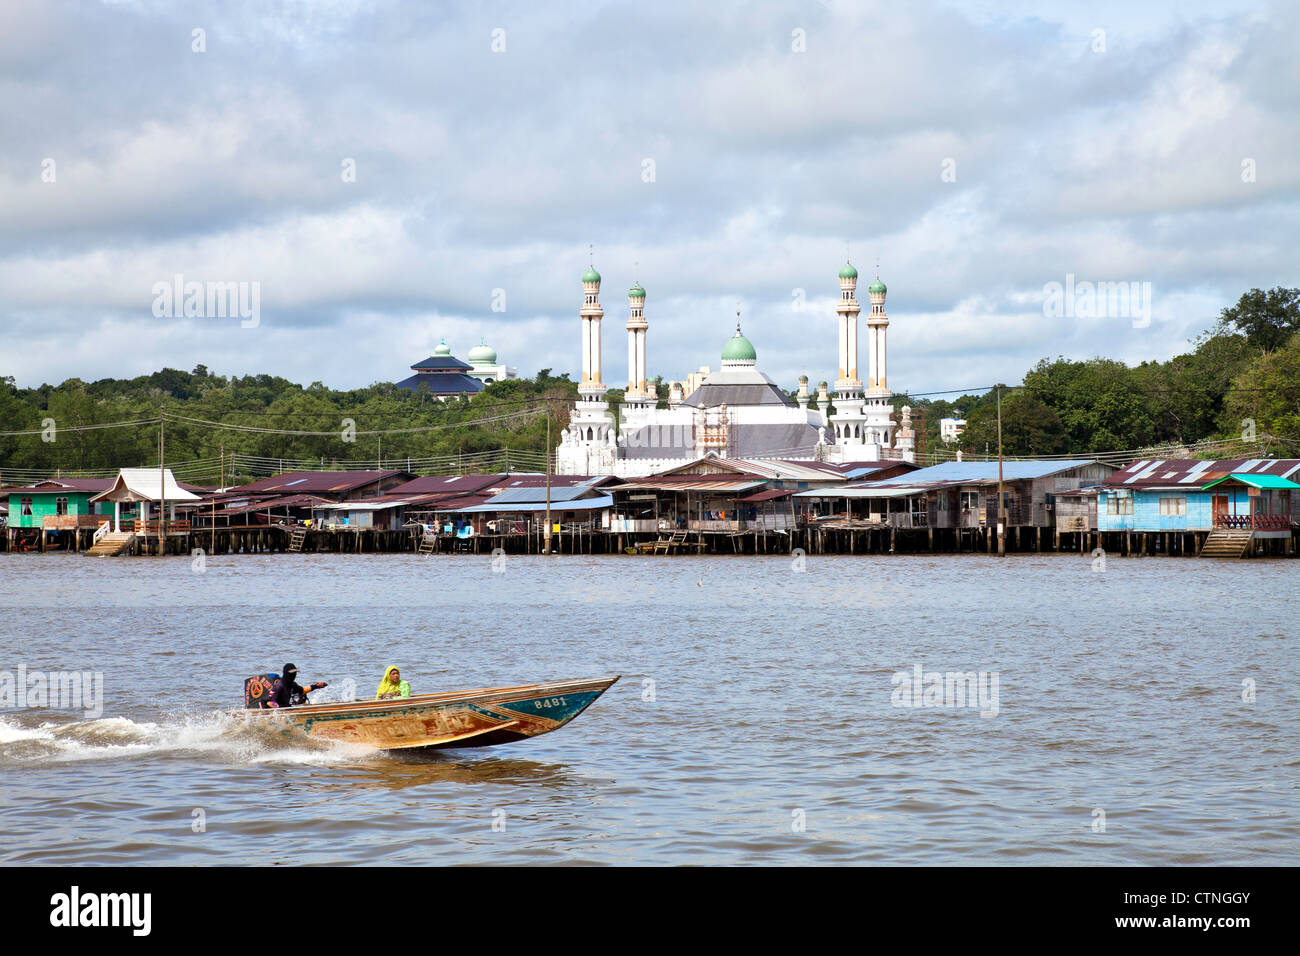 Water taxi with Kampong Ayer and a floating mosque in the background Bandar Seri Begawan Brunei. - Stock Image